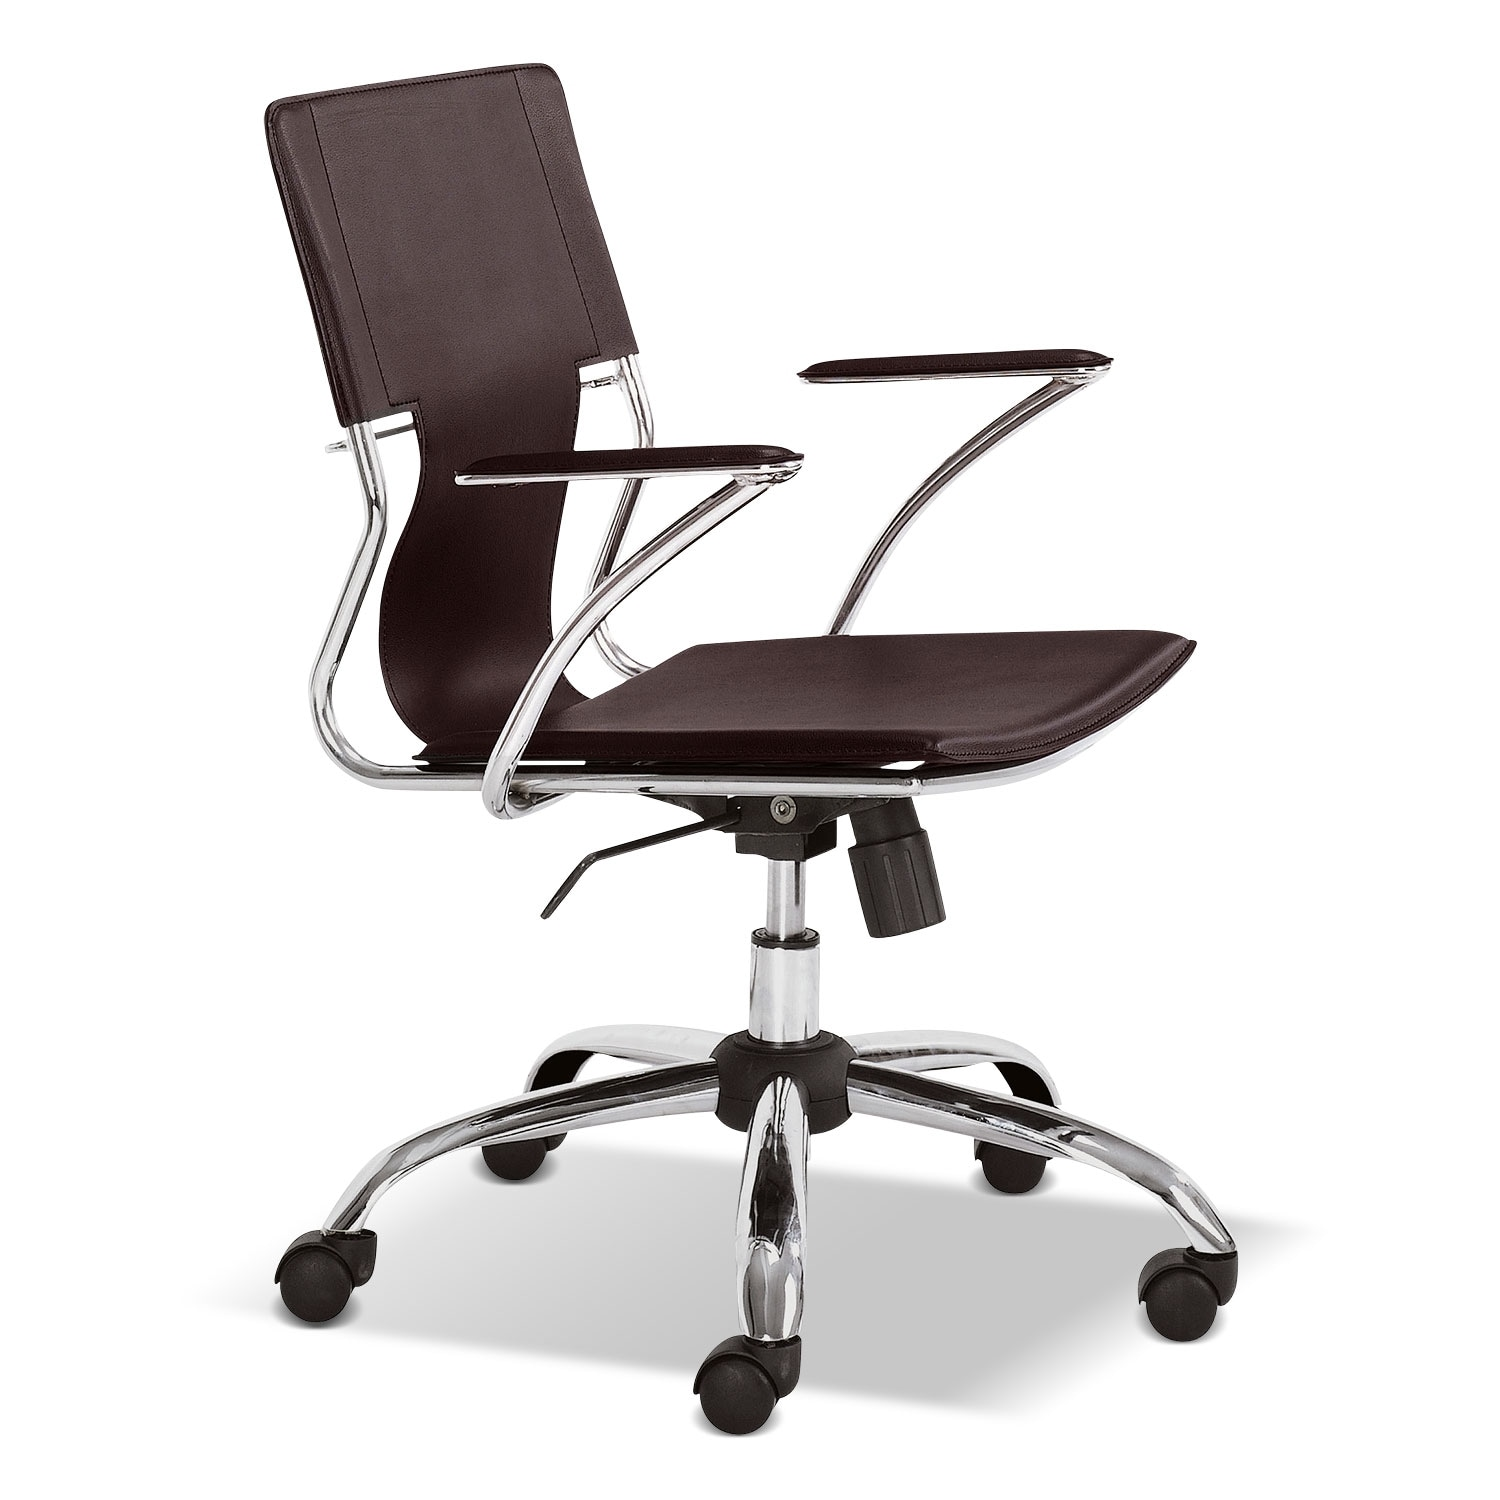 Home Office Furniture - Crowley Office Arm Chair - Brown